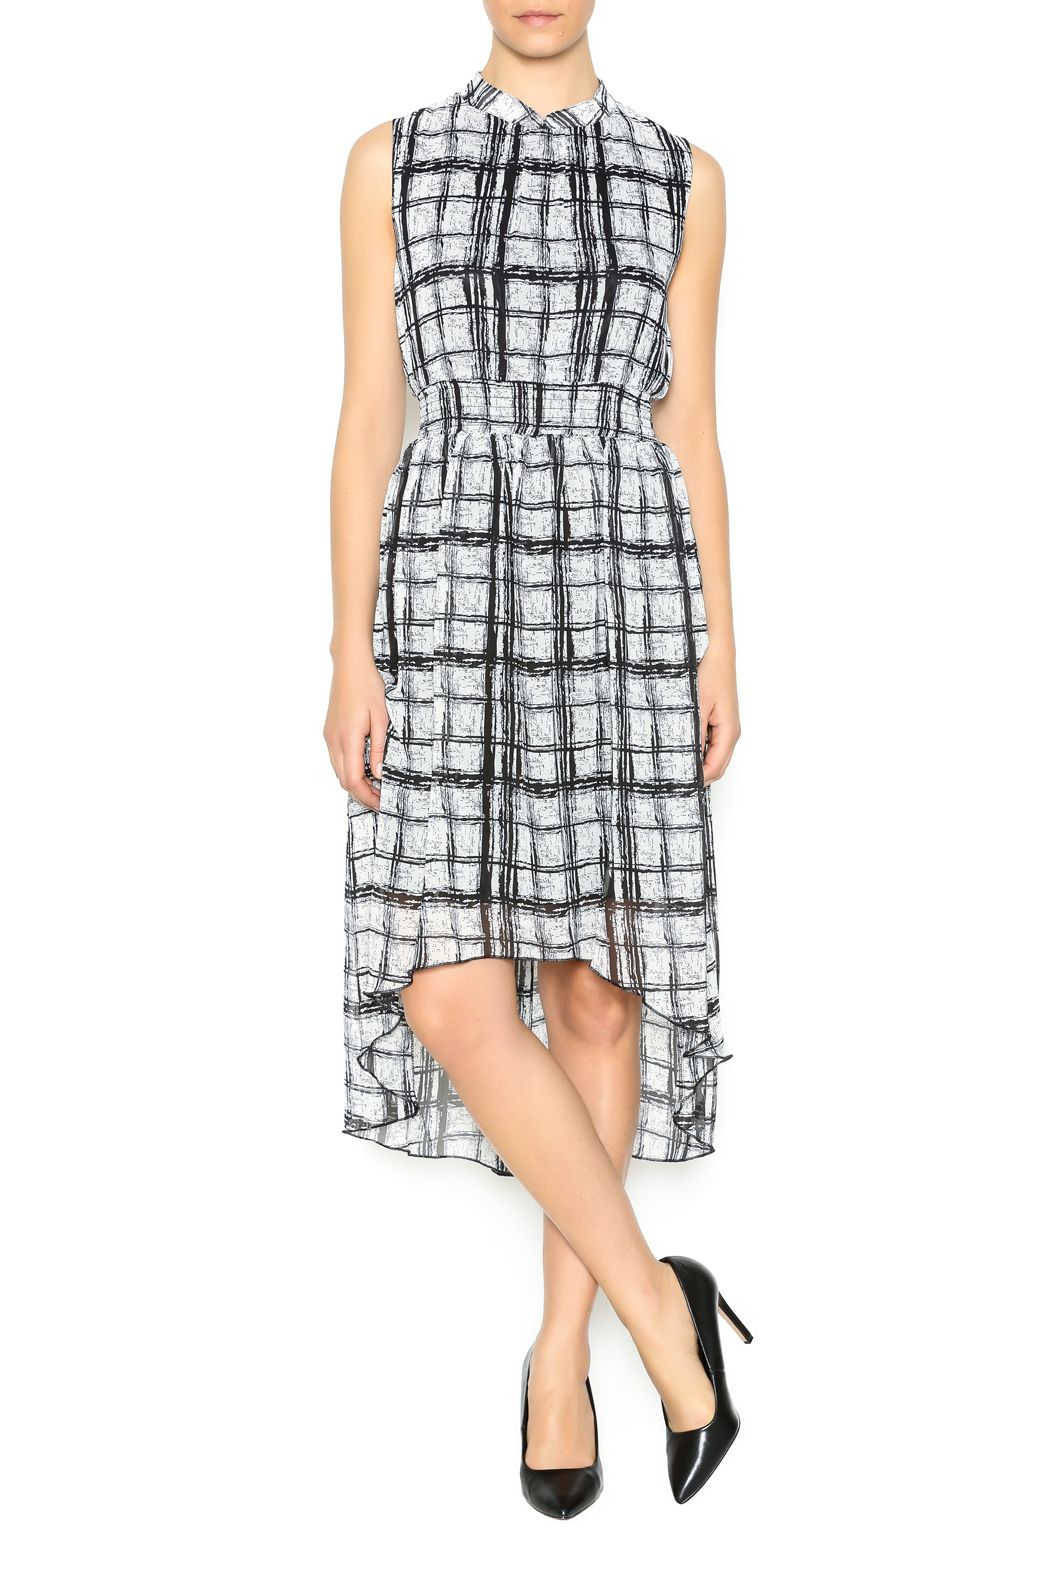 White and black grid dress with elastic waist and high low hemline.